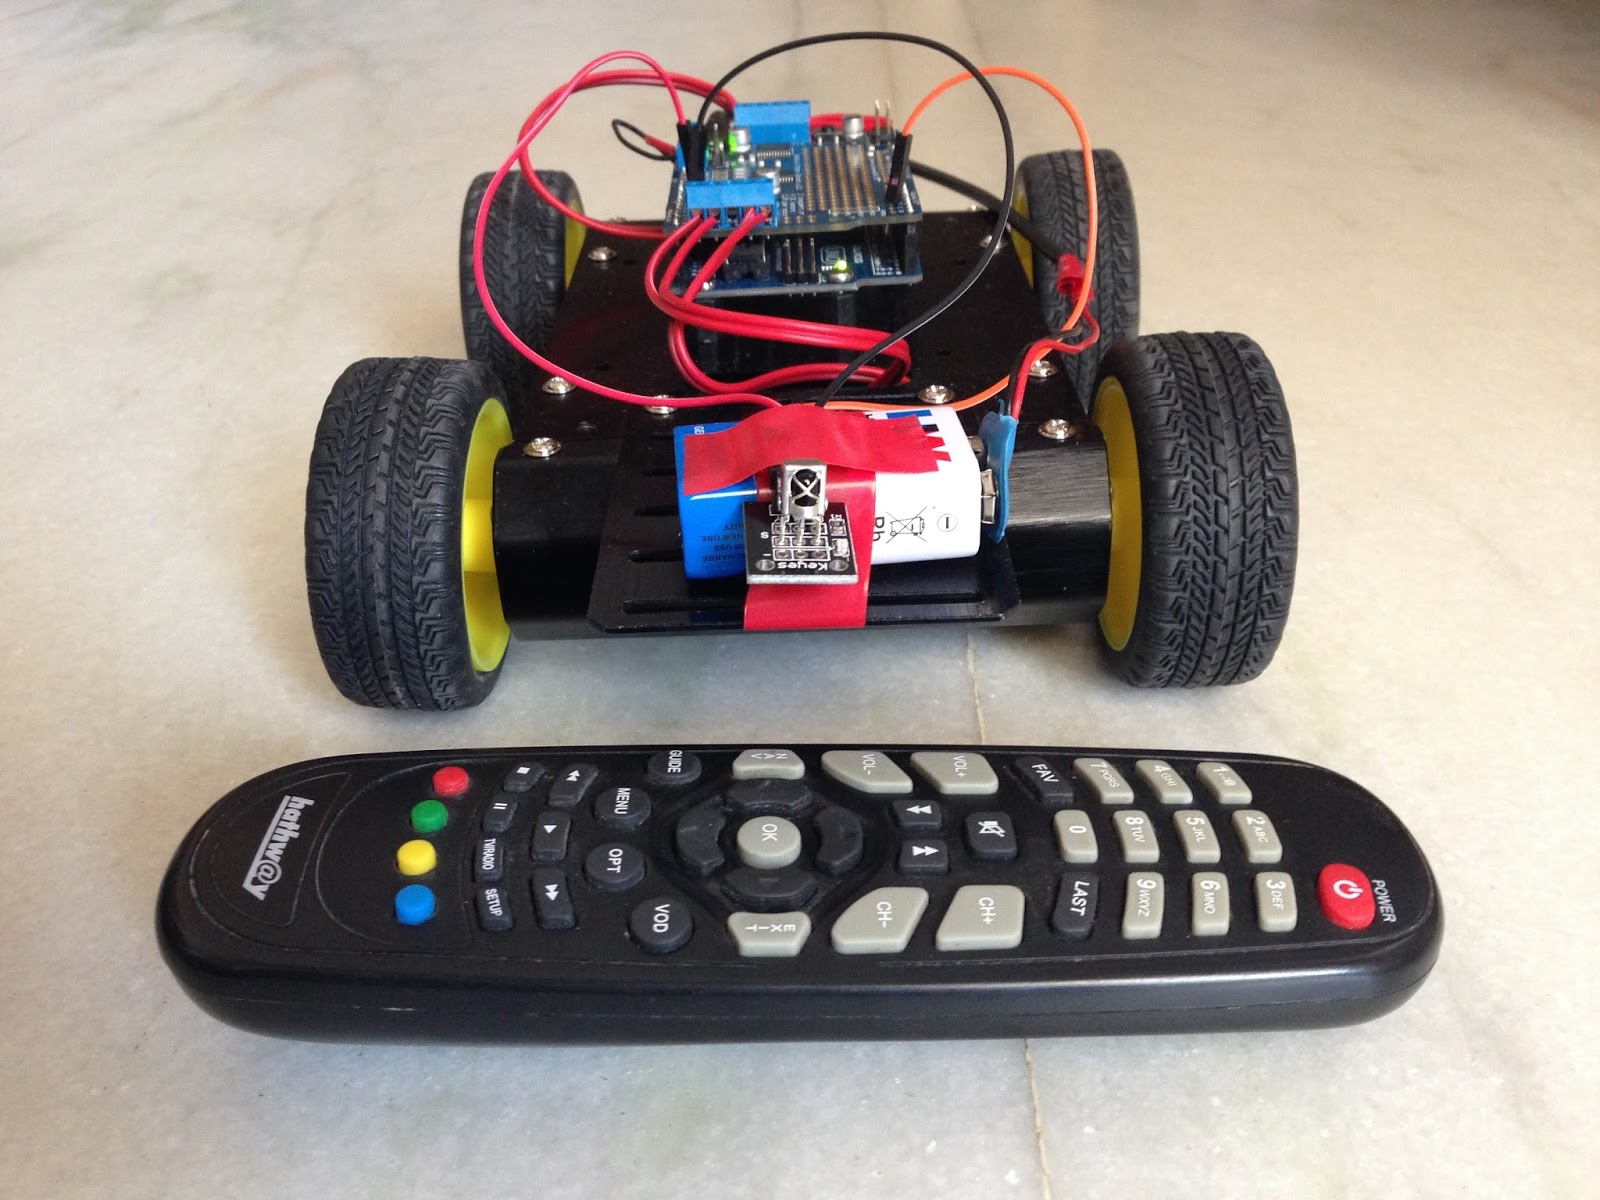 Big Data And Cloud Tips Snap Circuits Jr From Elenco For Kids Kits Lately I Had Been My Hands On With The Raspberrypi Arduino Prototype To Get Started Iot Internet Of Things Being A Graduate In Electrical